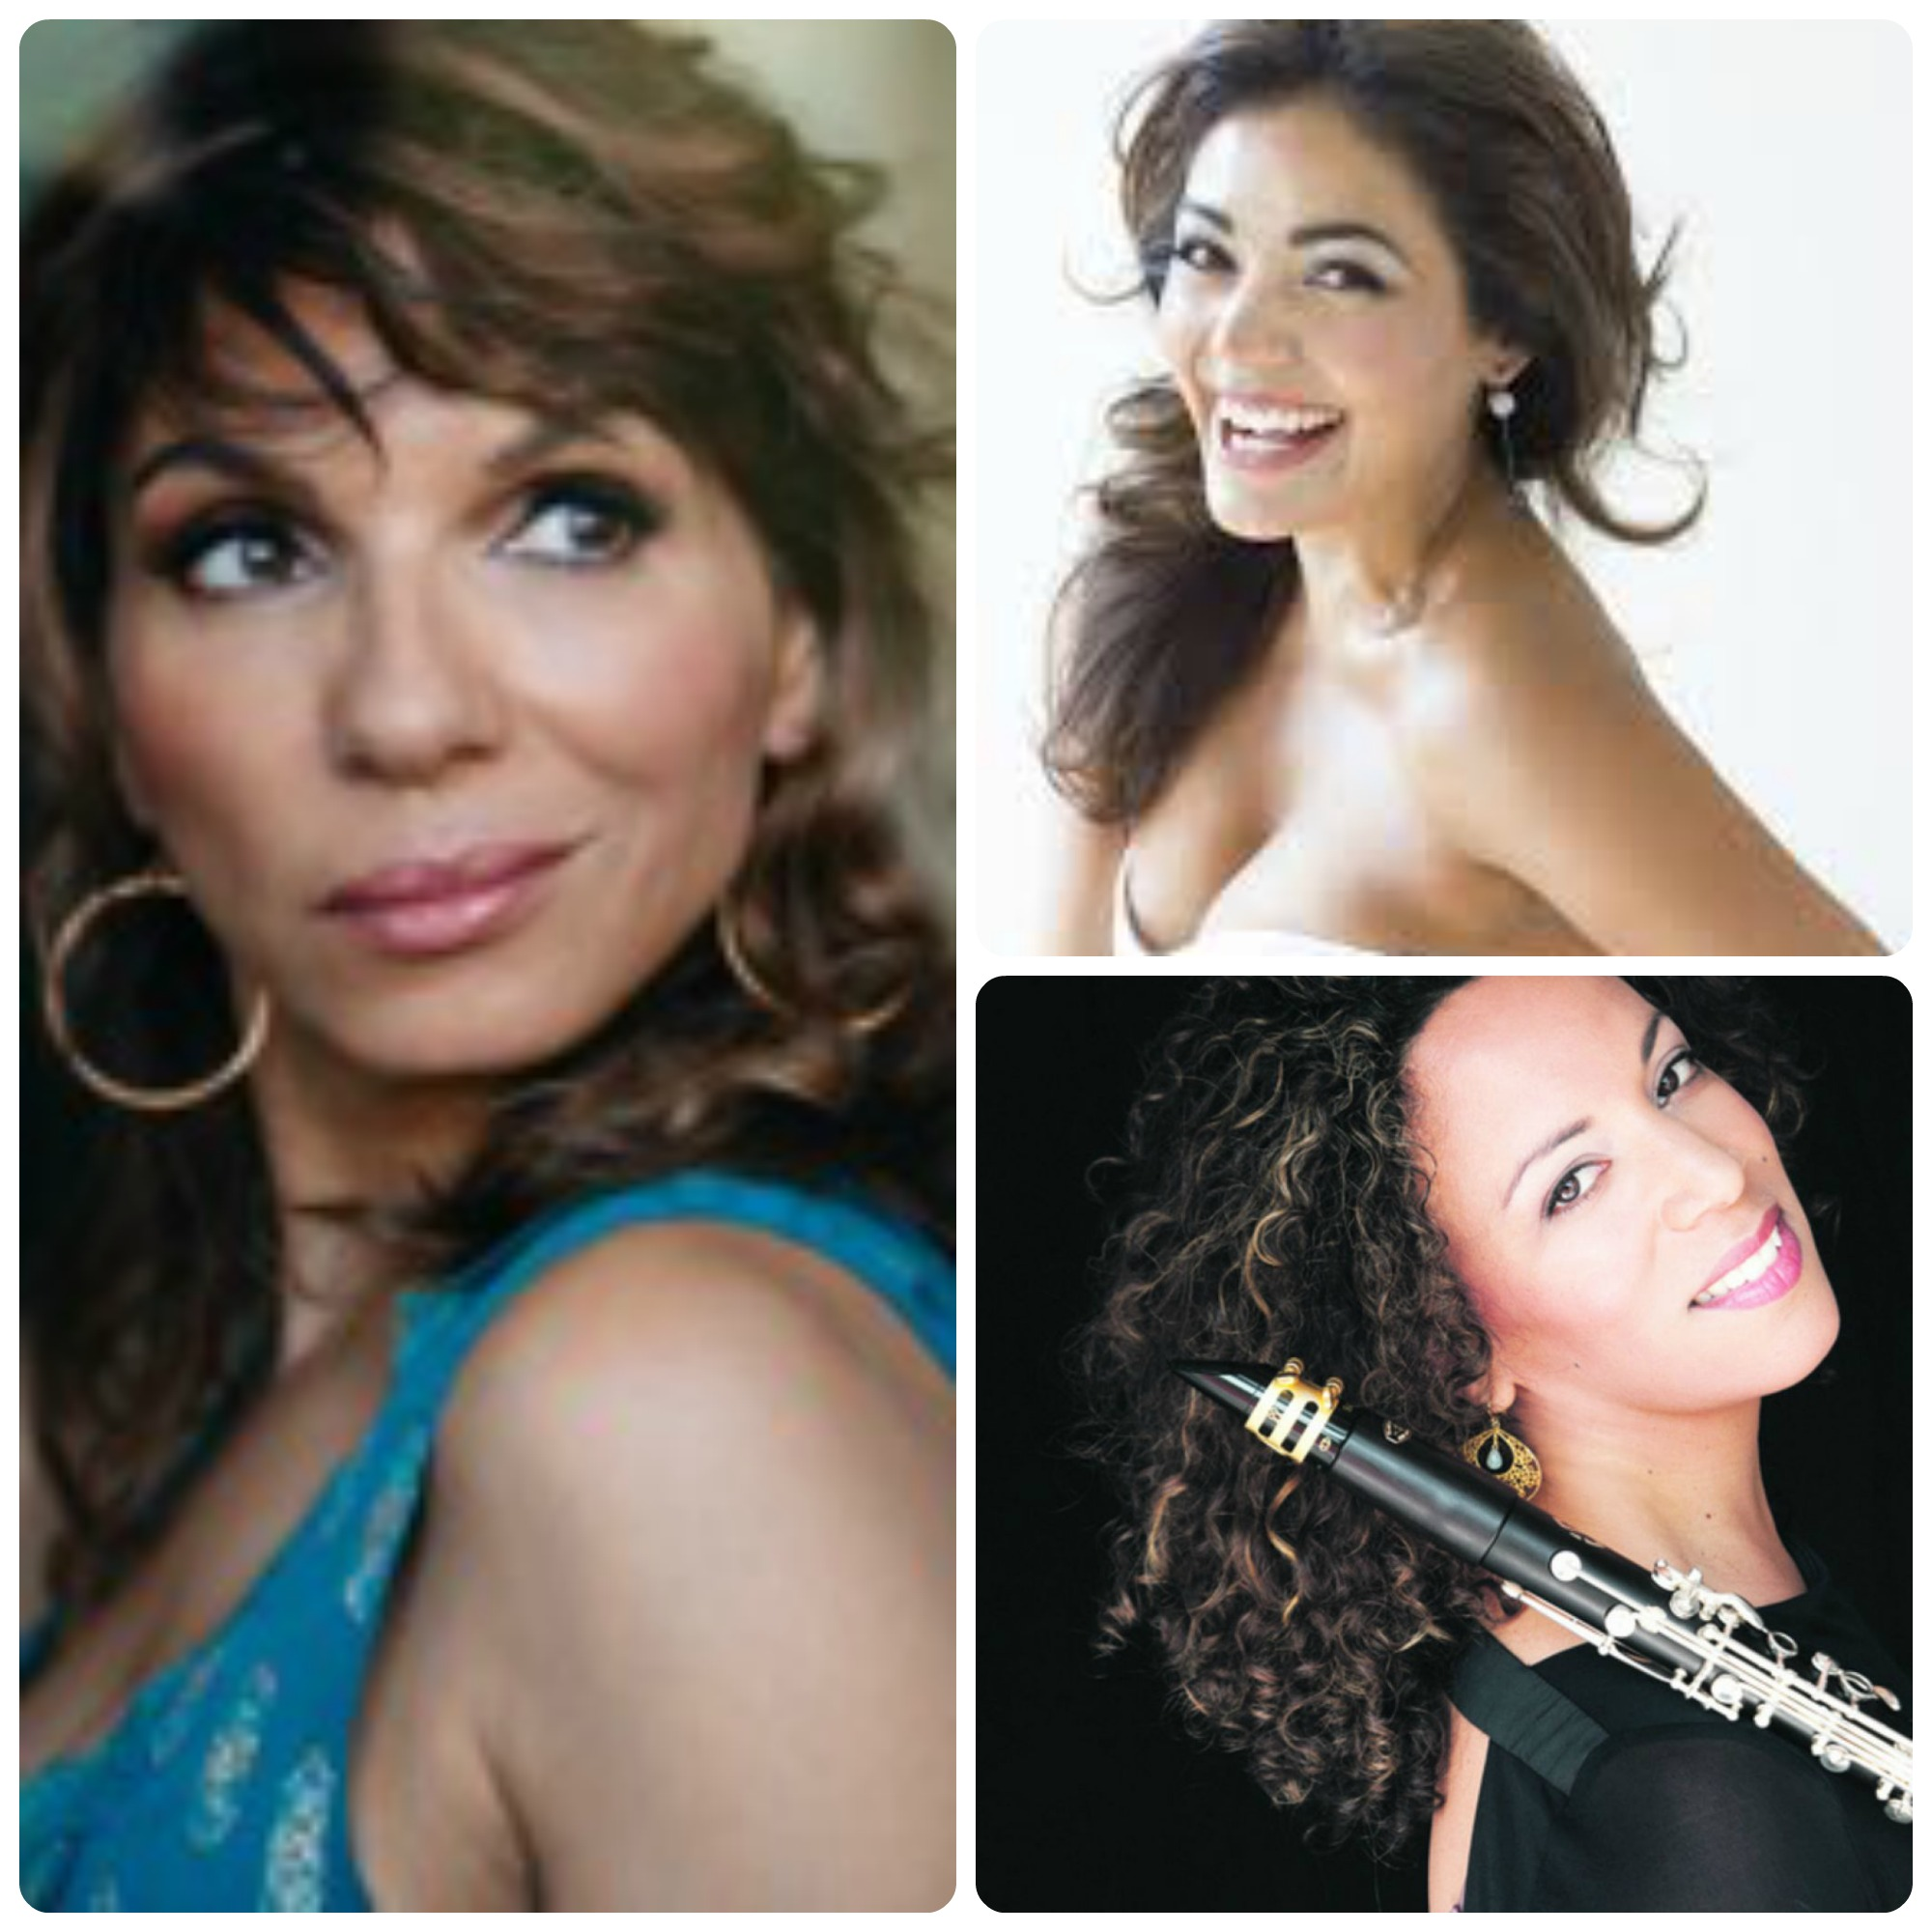 "HOLES IN THE SKY: with Mariam Adam and Ailyn Perez - Pianist Lara Downes is joined by international opera star Ailyn Perez and clarinetist Mariam Adam in a program of music by women composers, celebrating her Sony Masterworks album Holes in the Sky.""I want music that makes holes in the sky""-Georgia O'KeeffeThis concert-with-conversation features music by Clarice Assad, Layale Chaker, Maria Grever, Missy Mazzoli, Joni Mitchell, Angelica Negron, Florence Price, Sarah Kirkland Snider, Pauline Viardot and others, celebrating the power of female creativity and the women who inspire us to make holes in the sky.Presented in support of PLAN International Because I Am A Girl, the youth-led, global movement for girls' rights and gender equality."